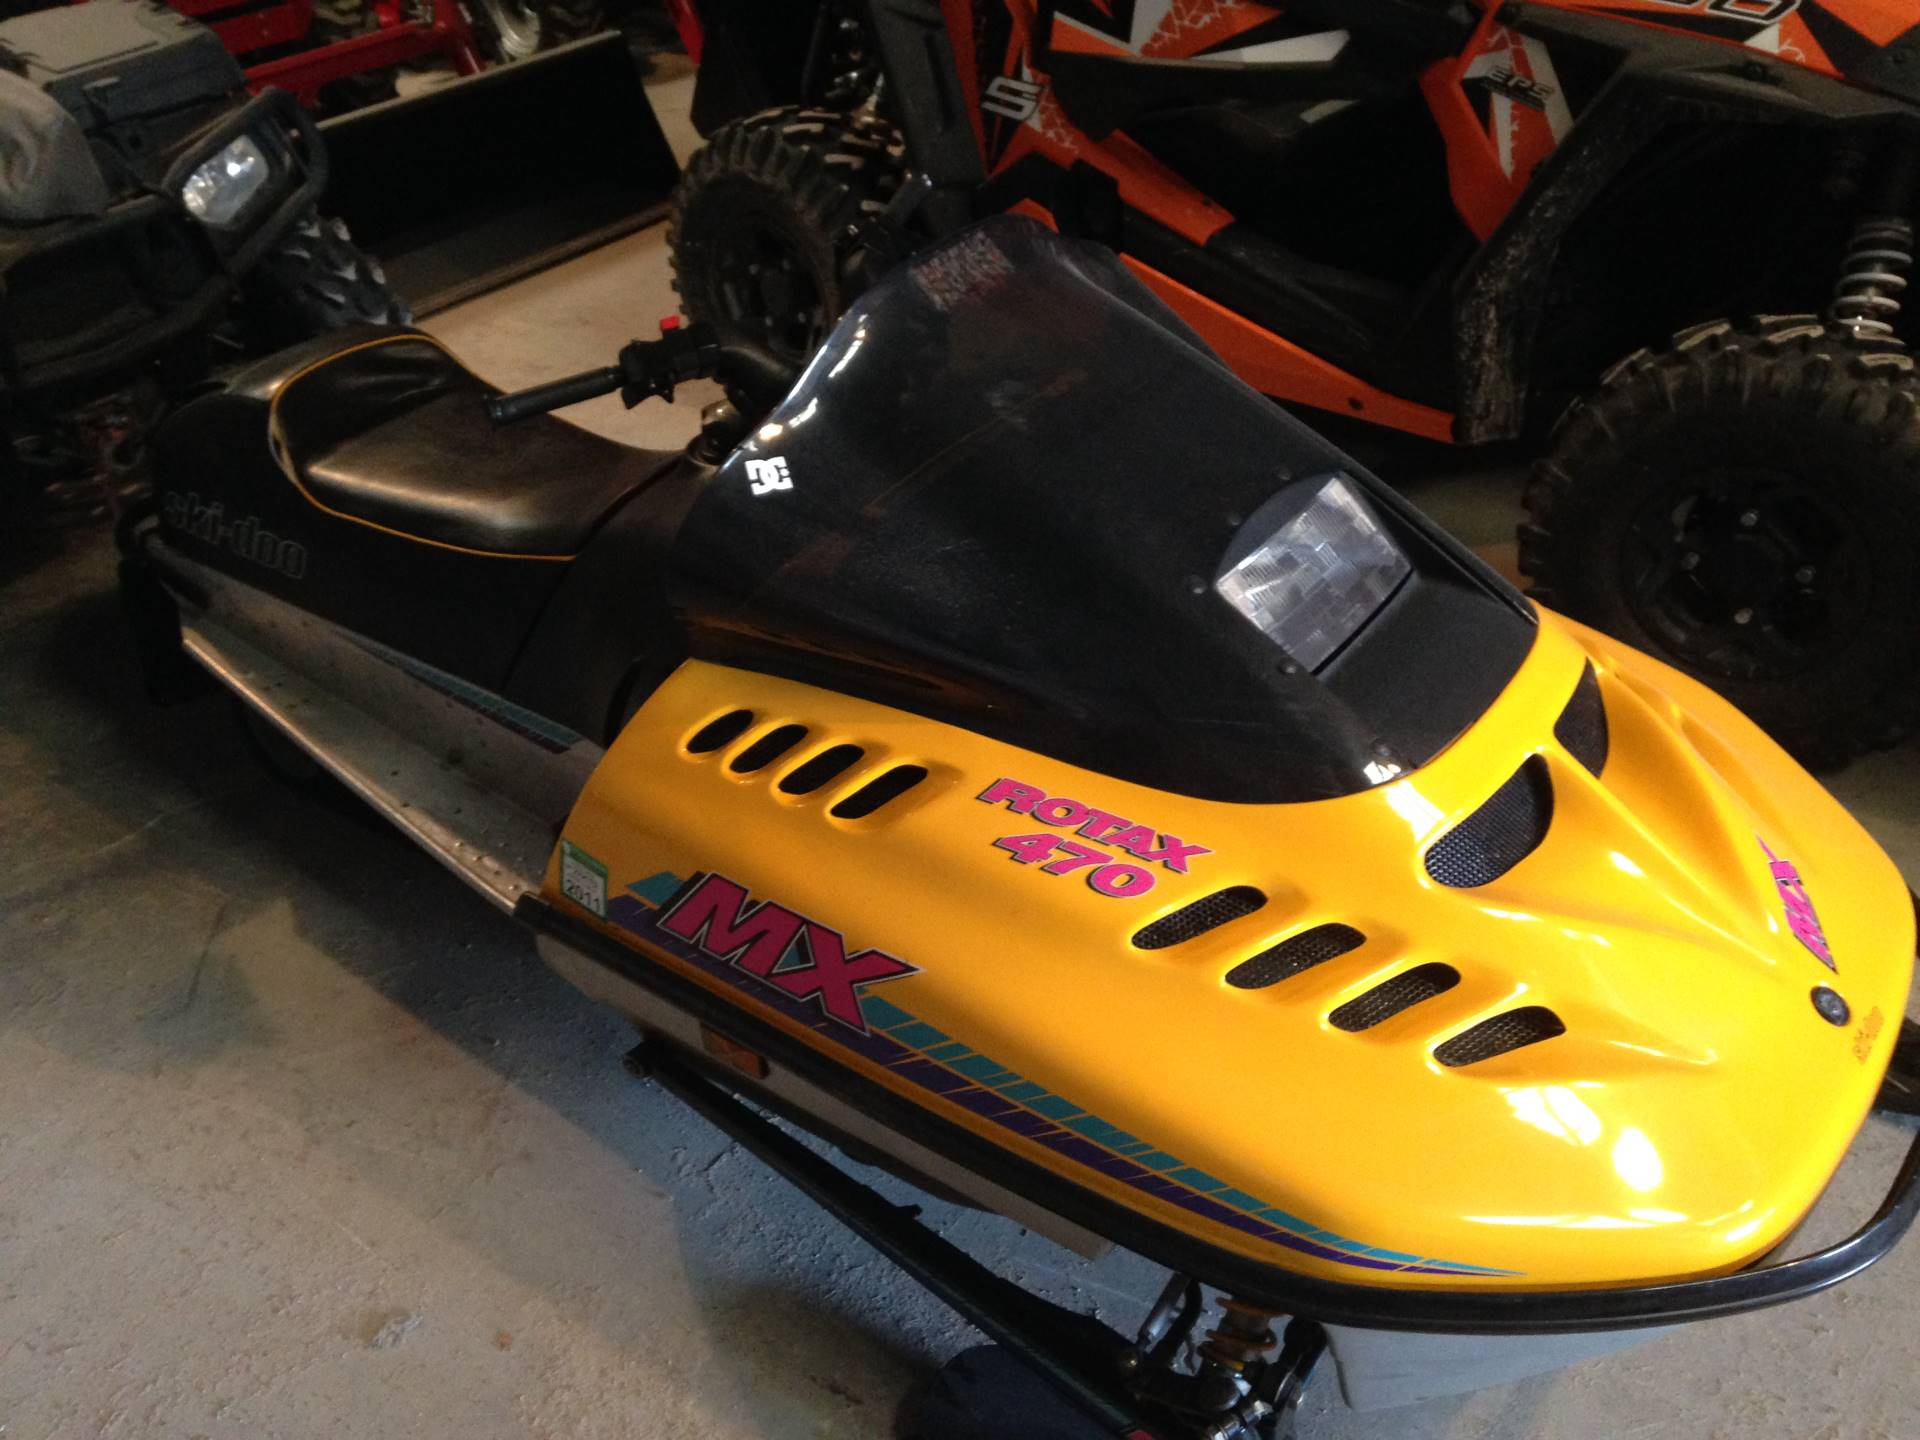 1993 Ski-Doo MX 470 in Elkhorn, Wisconsin - Photo 1